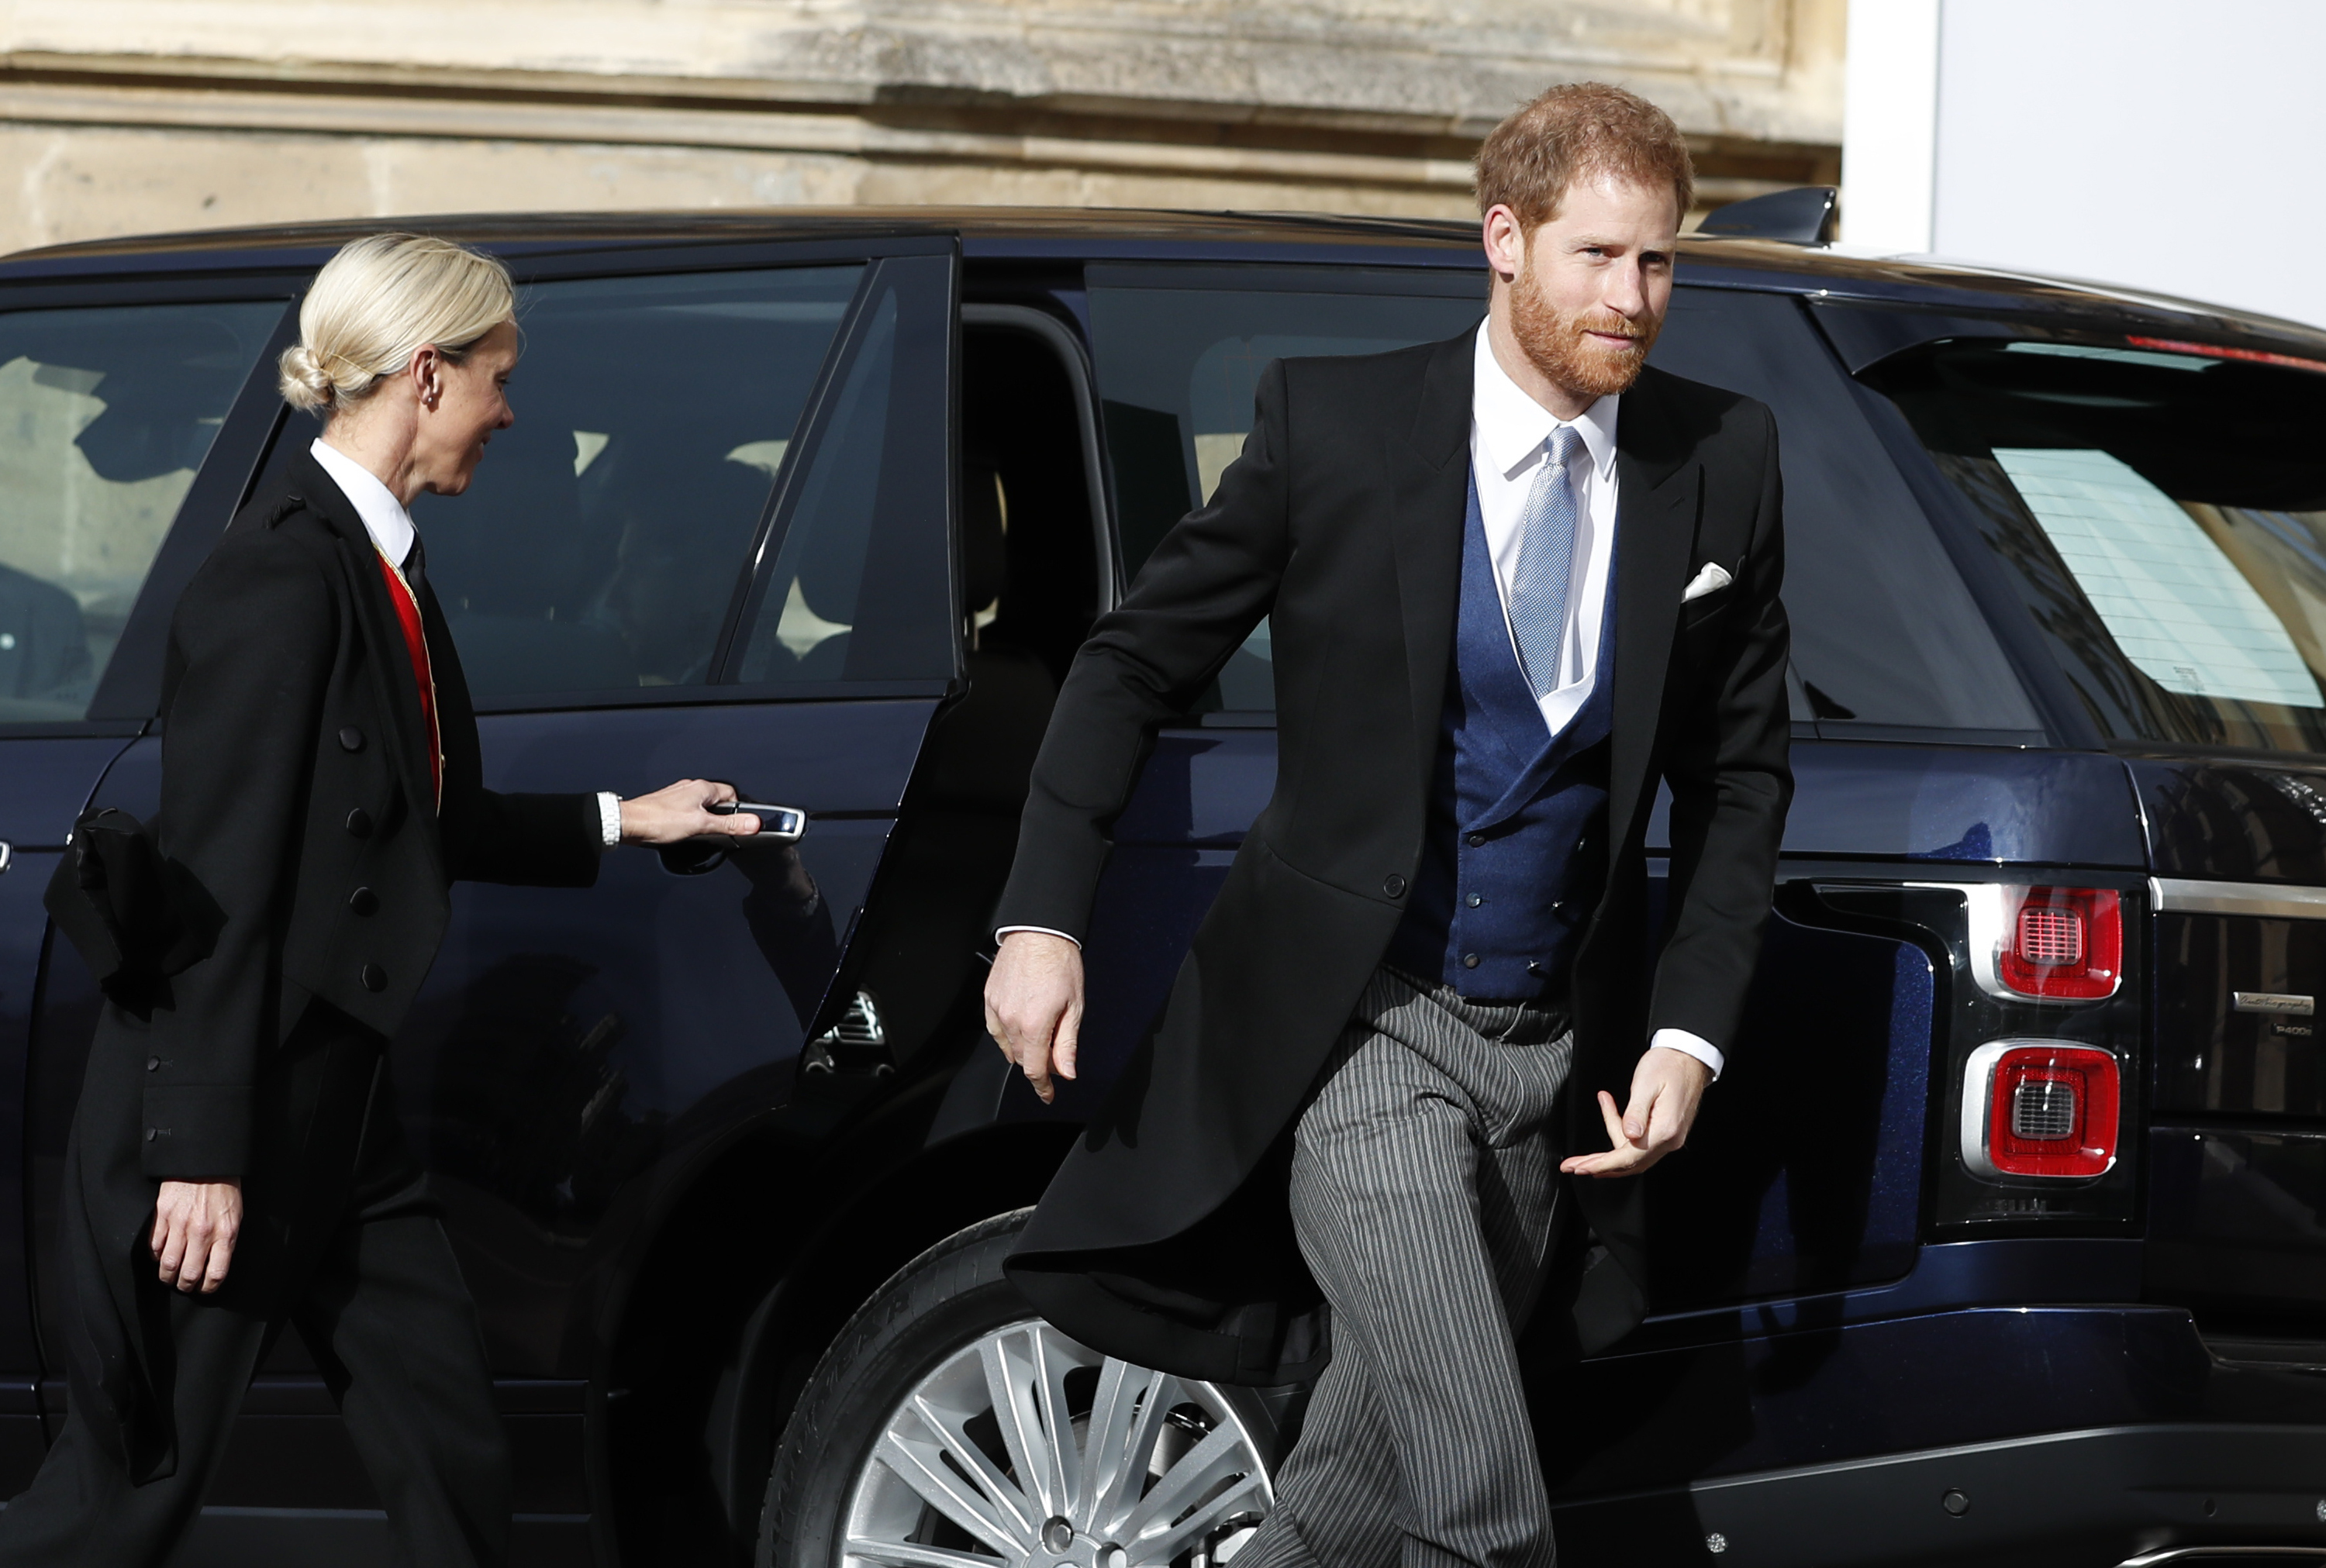 <div class='meta'><div class='origin-logo' data-origin='none'></div><span class='caption-text' data-credit='Alastair Grant, Pool via AP'>Britain's Prince Harry arrives for the wedding of Princess Eugenie of York and Jack Brooksbank at St George's Chapel, Windsor Castle, near London, England, Friday, Oct. 12, 2018.</span></div>